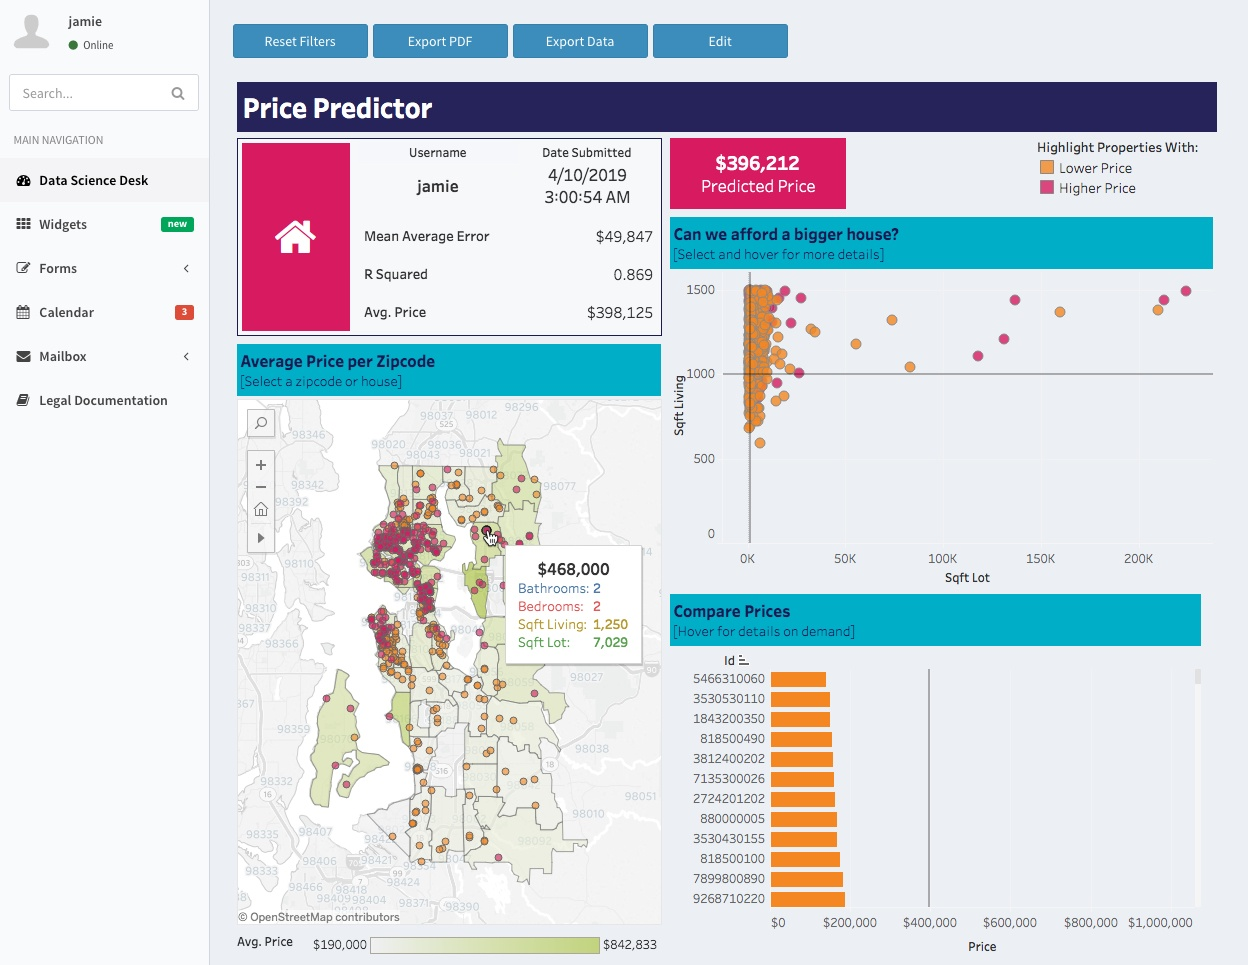 A real estate application shows Tableau embedded analytics that use predictive modeling to forecast housing prices based on market trends.